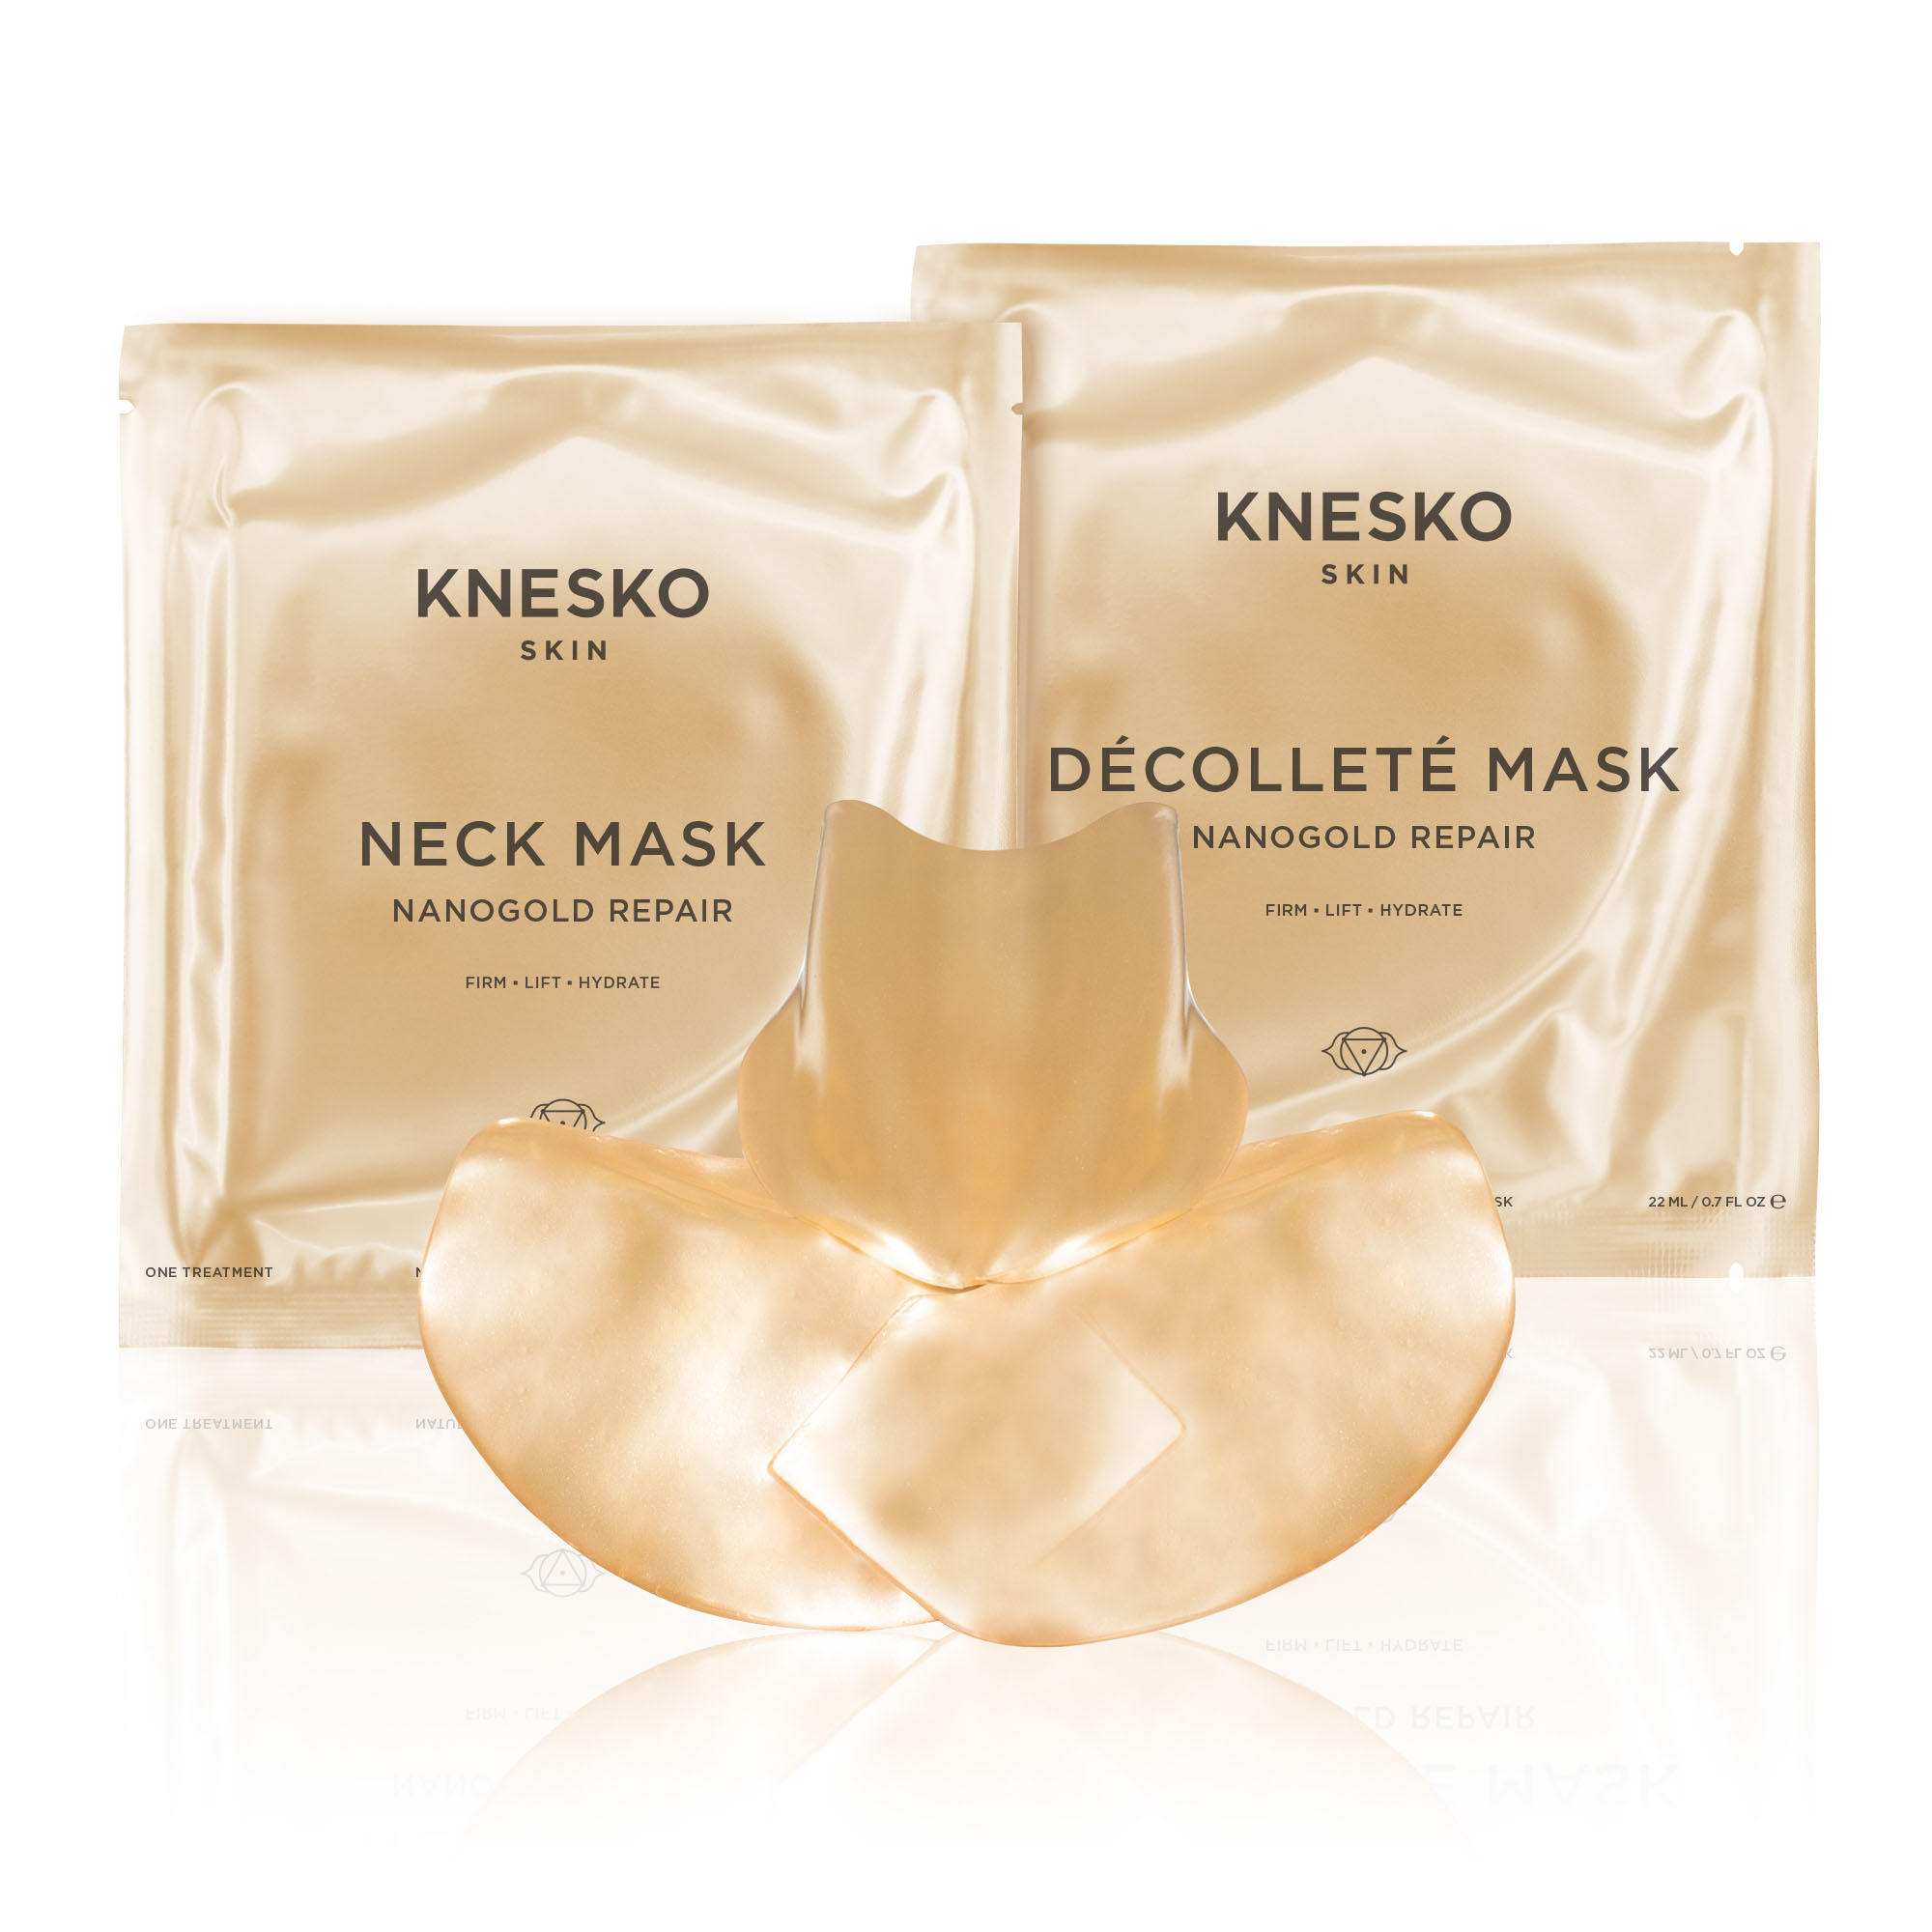 knesko nanogold repair decollete and neck mask